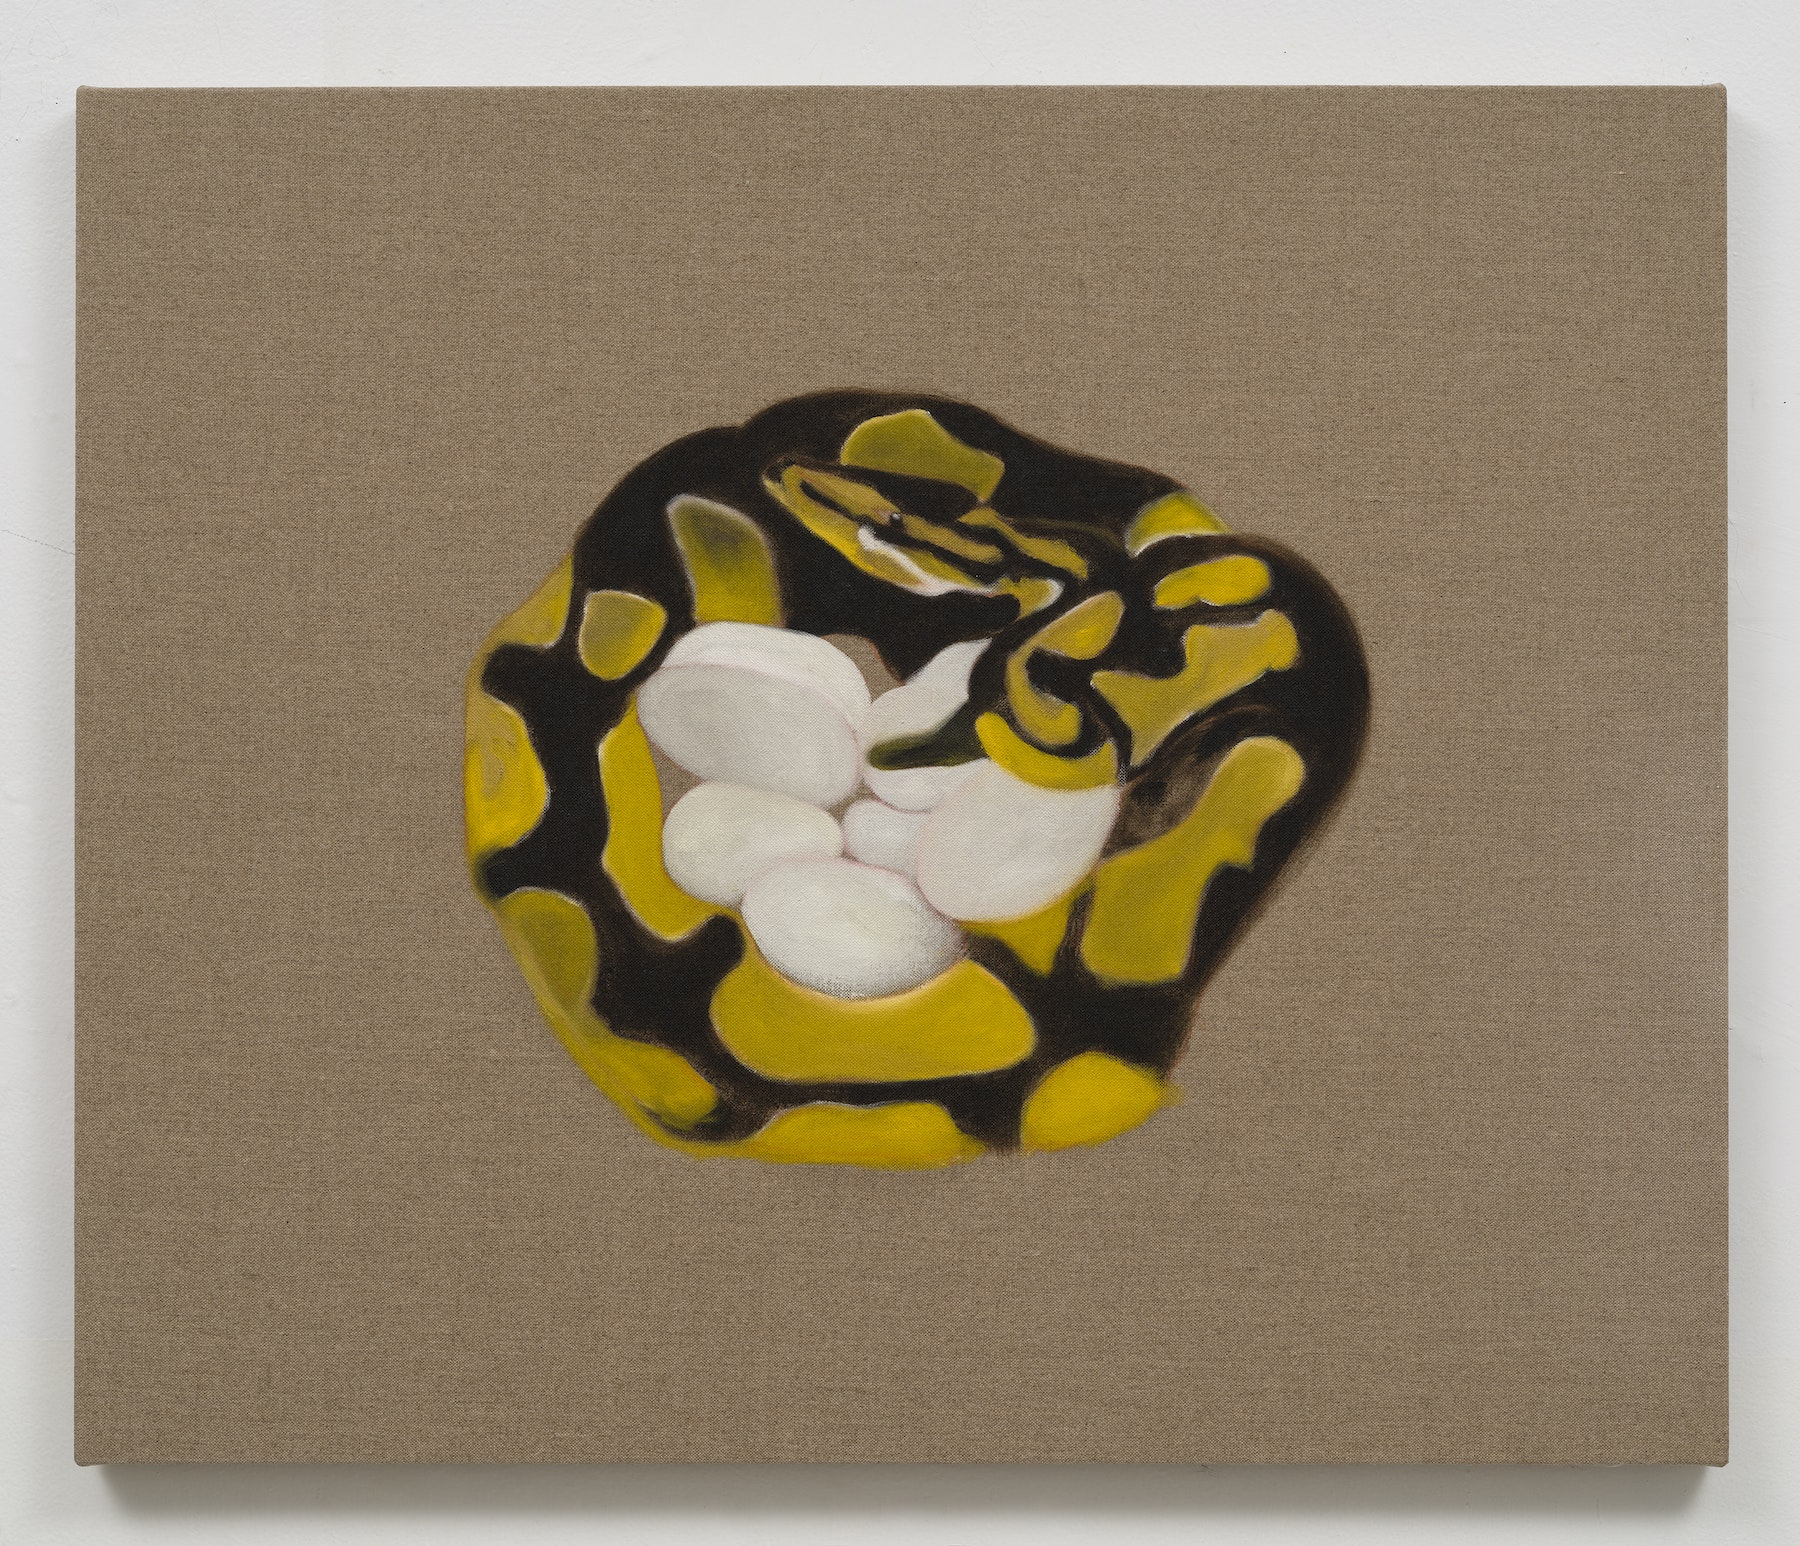 """Math Bass """"Eggs,"""" 2020 Oil on linen 30 x 36 x 1.25"""" [HxWxD] (76.2 x 91.44 x 3.18 cm) Inventory #BAS1034 Courtesy of the artist and Vielmetter Los Angeles Photo credit: Jeff Mclane"""